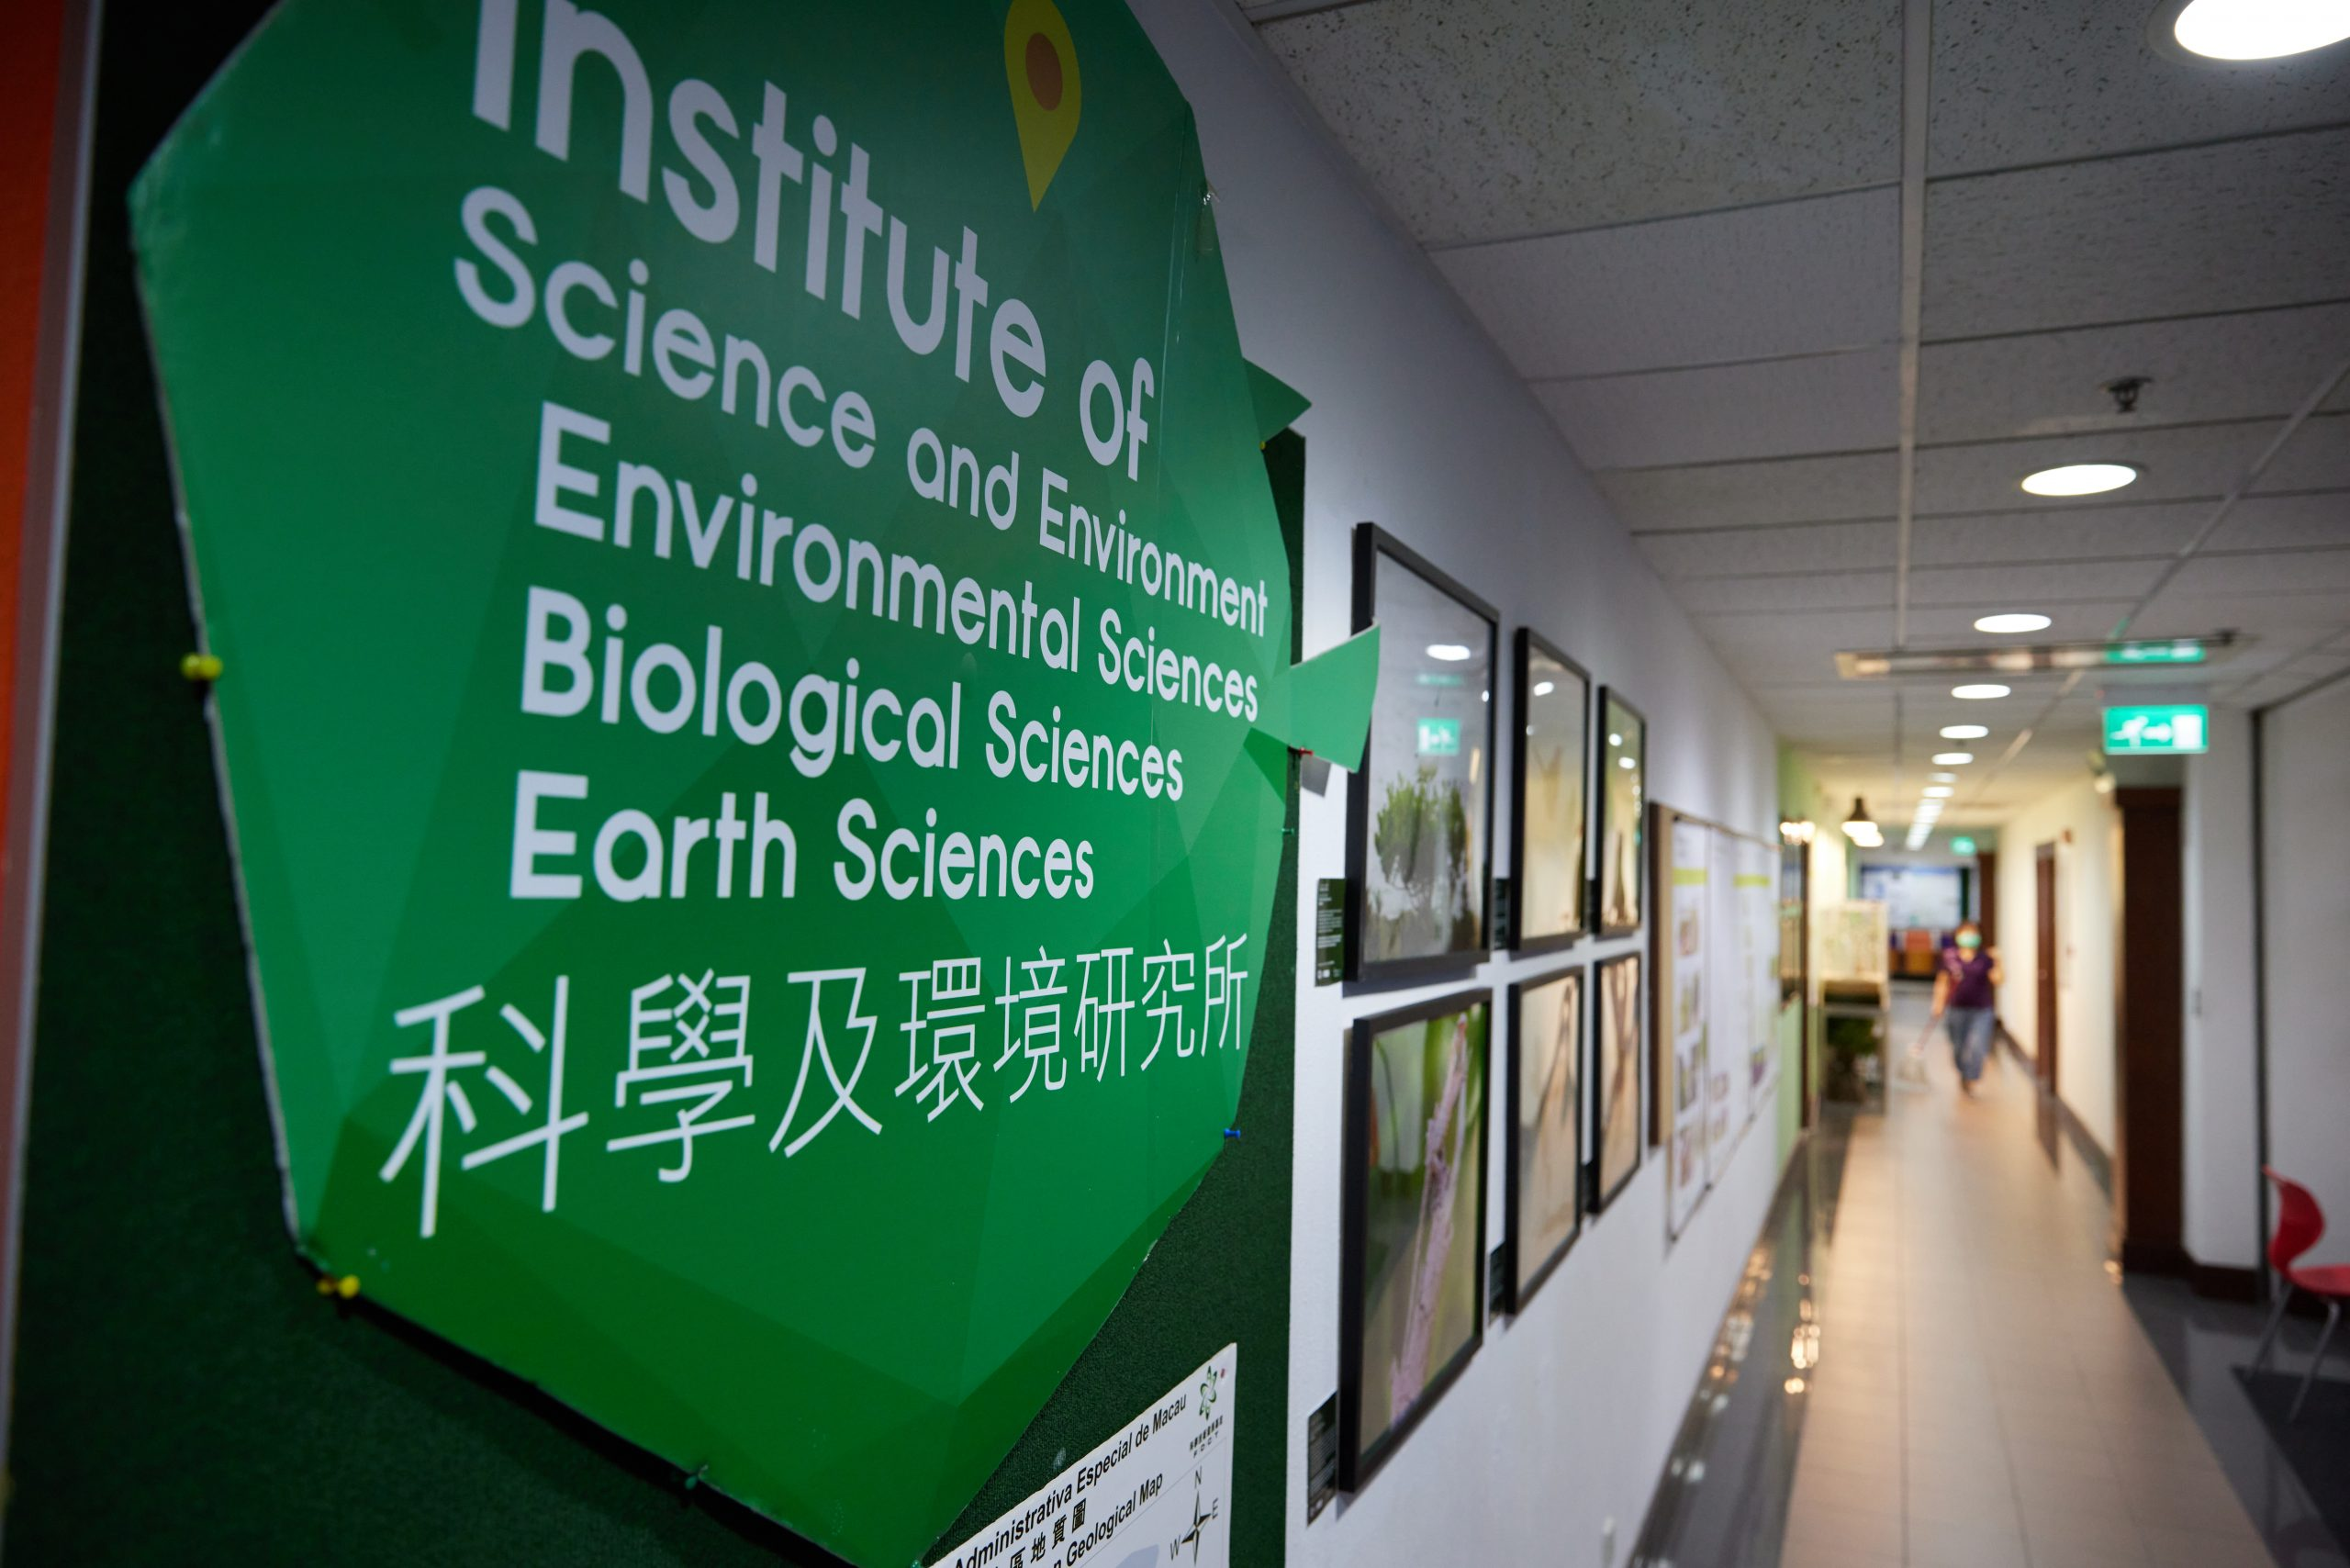 Institute of Science and Environment